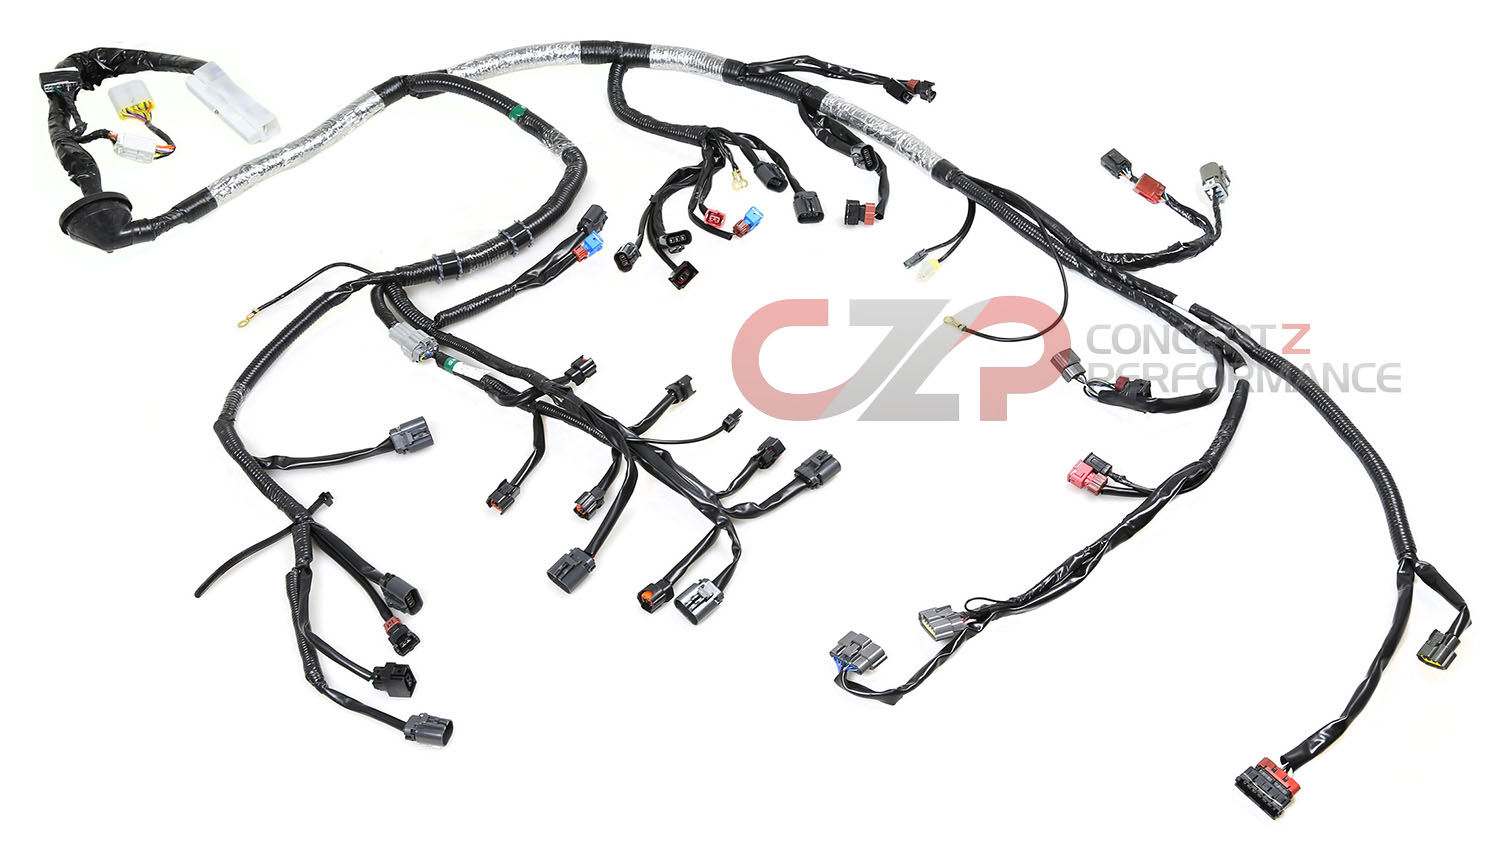 300zx install wiring harness without removing engine